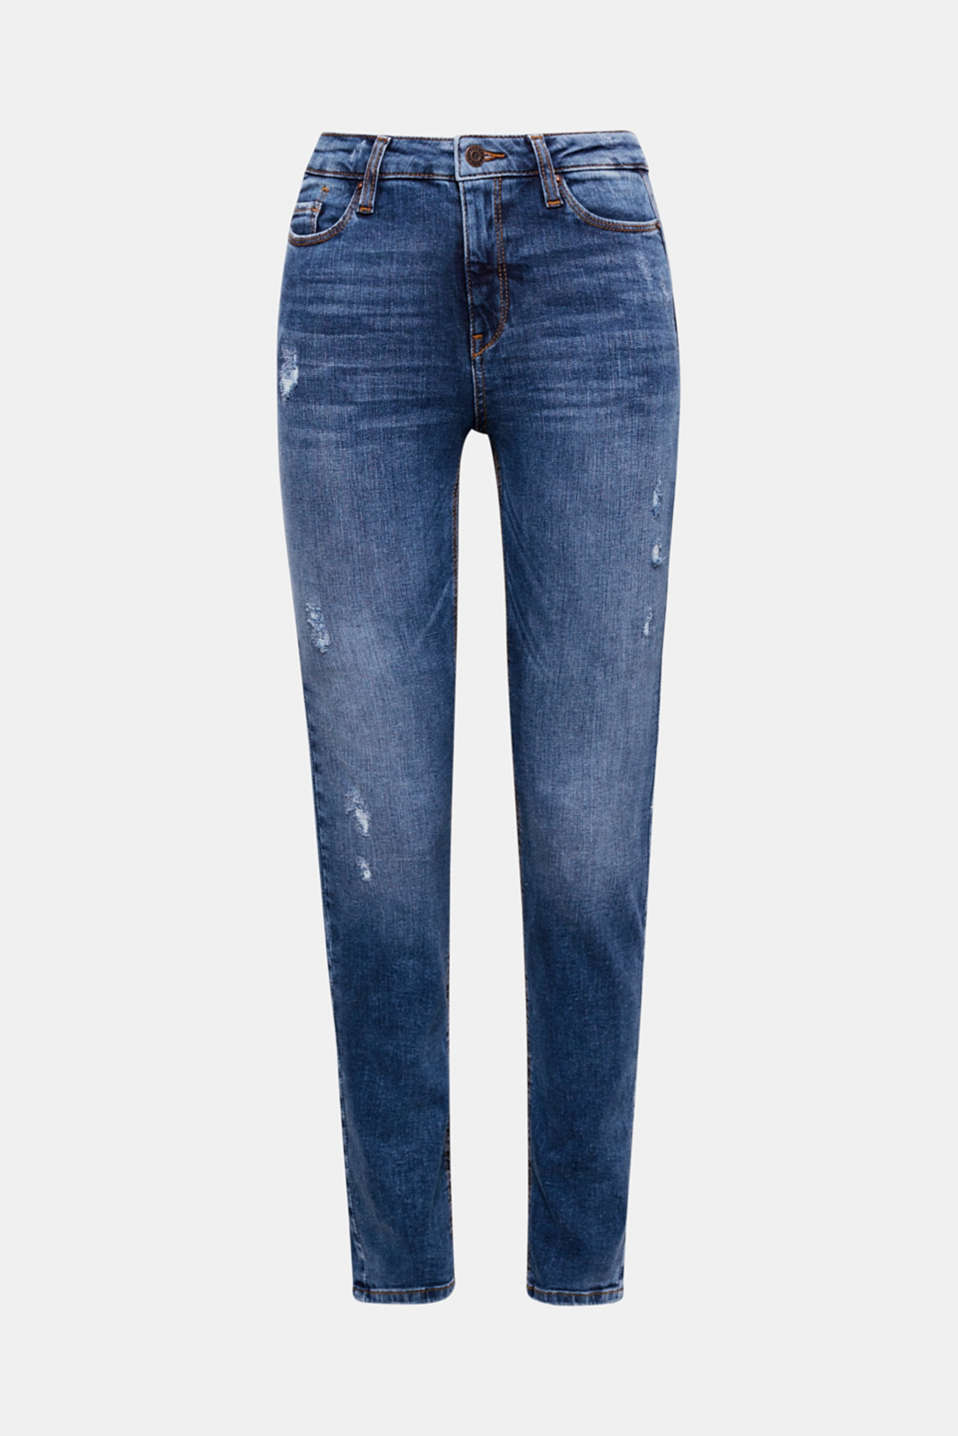 We love denim! Distinctive vintage and washed effects make these five-pocket jeans a favourite style.